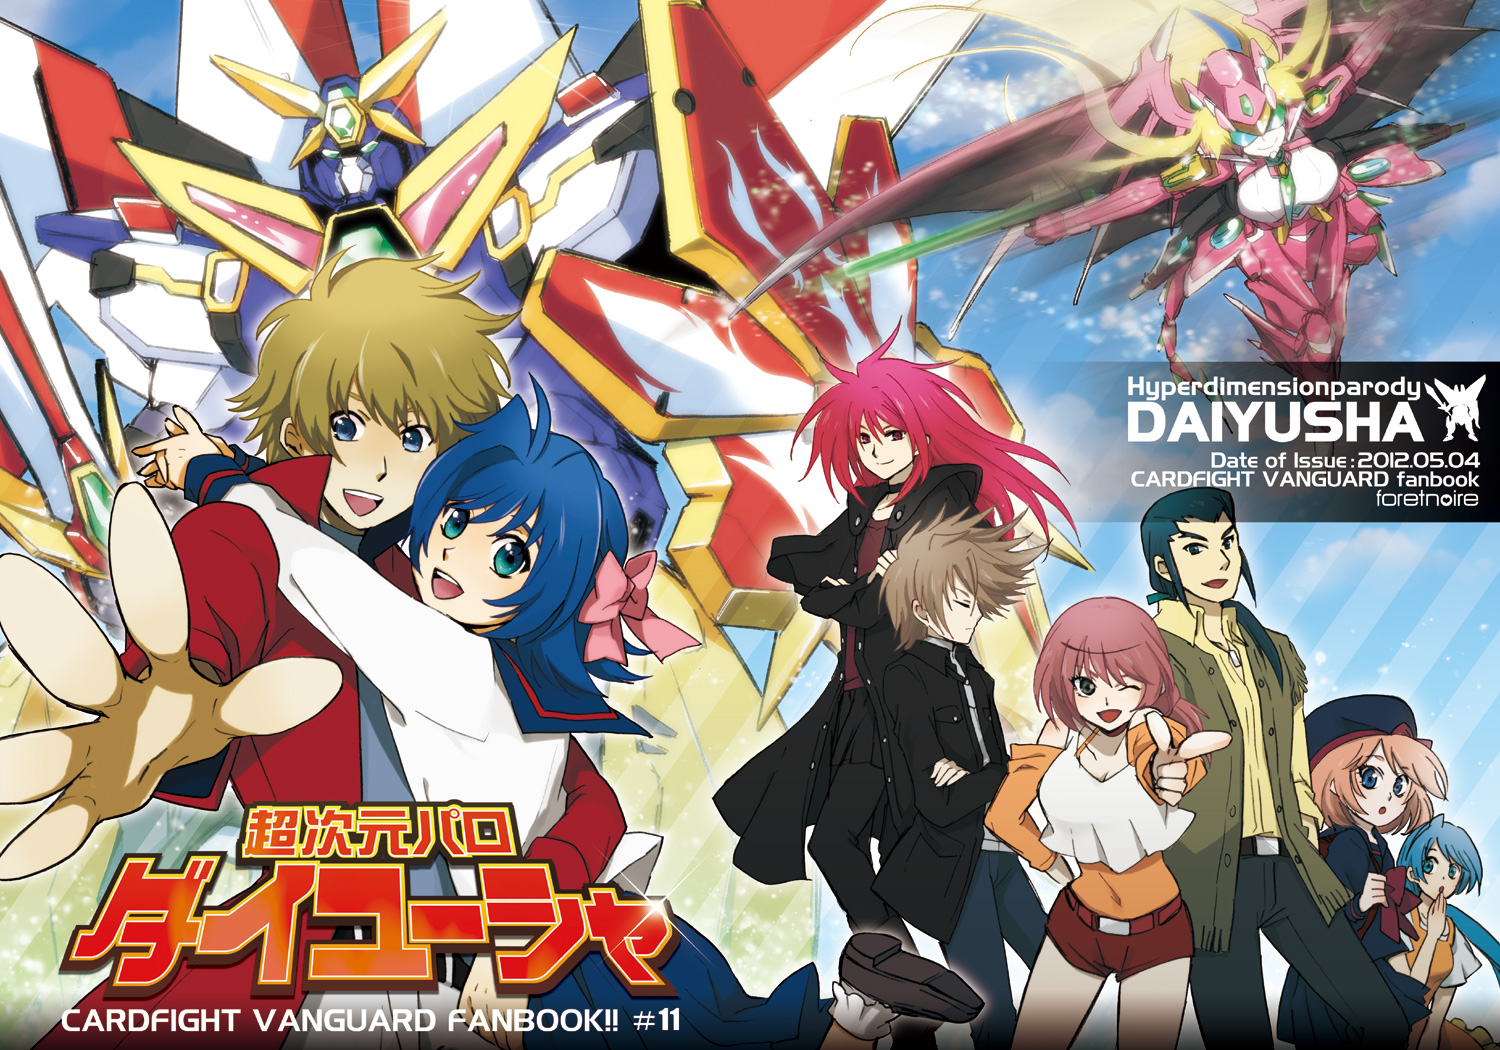 Dimensional Anime Characters : Cardfight vanguard image zerochan anime